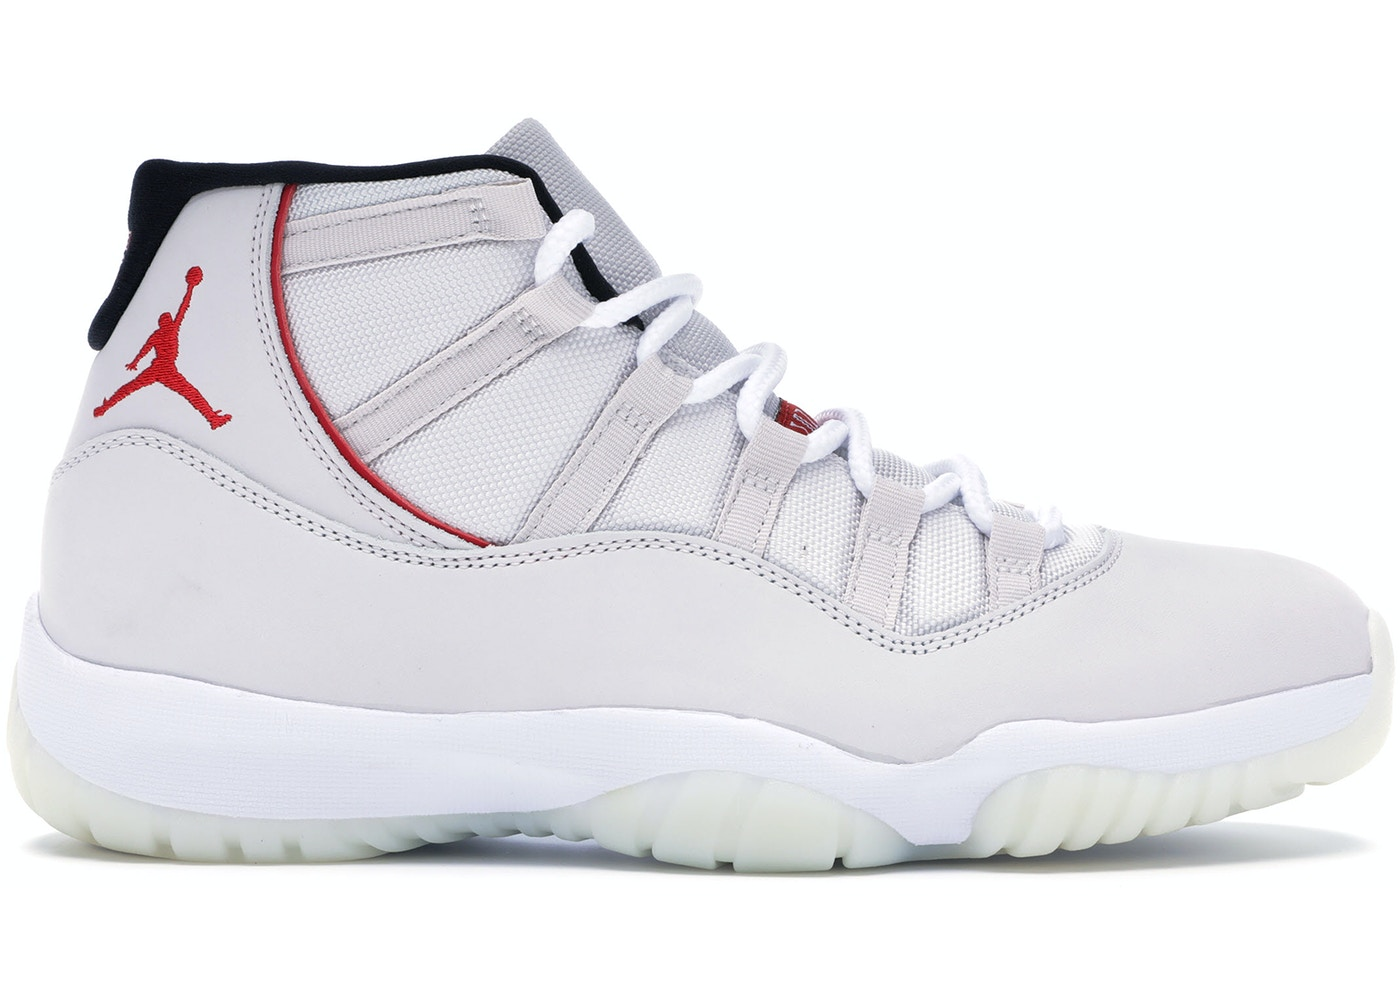 low priced f0ecc 4b5b9 Jordan 11 Retro Platinum Tint